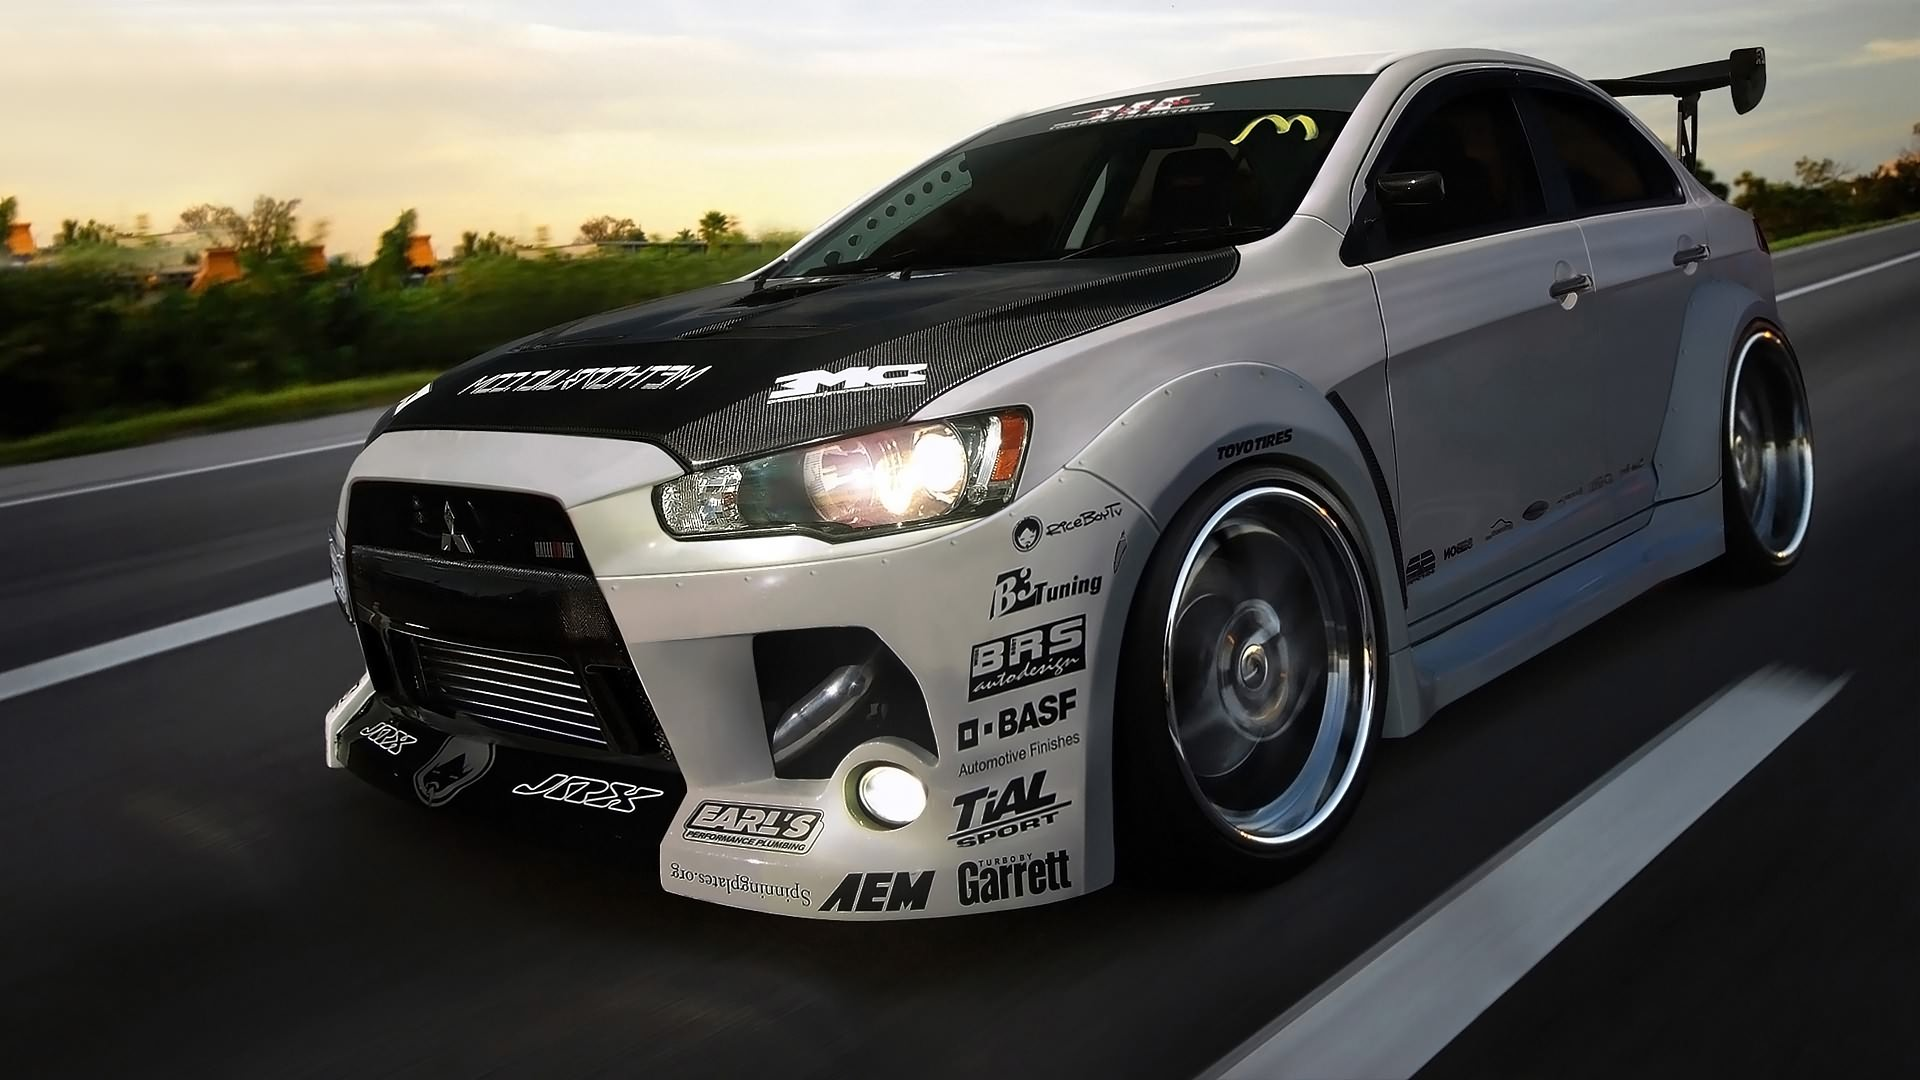 Evo 10 Wallpaper Wallpaper Road Sports Car Tuning Mitsubishi Lancer Evolution